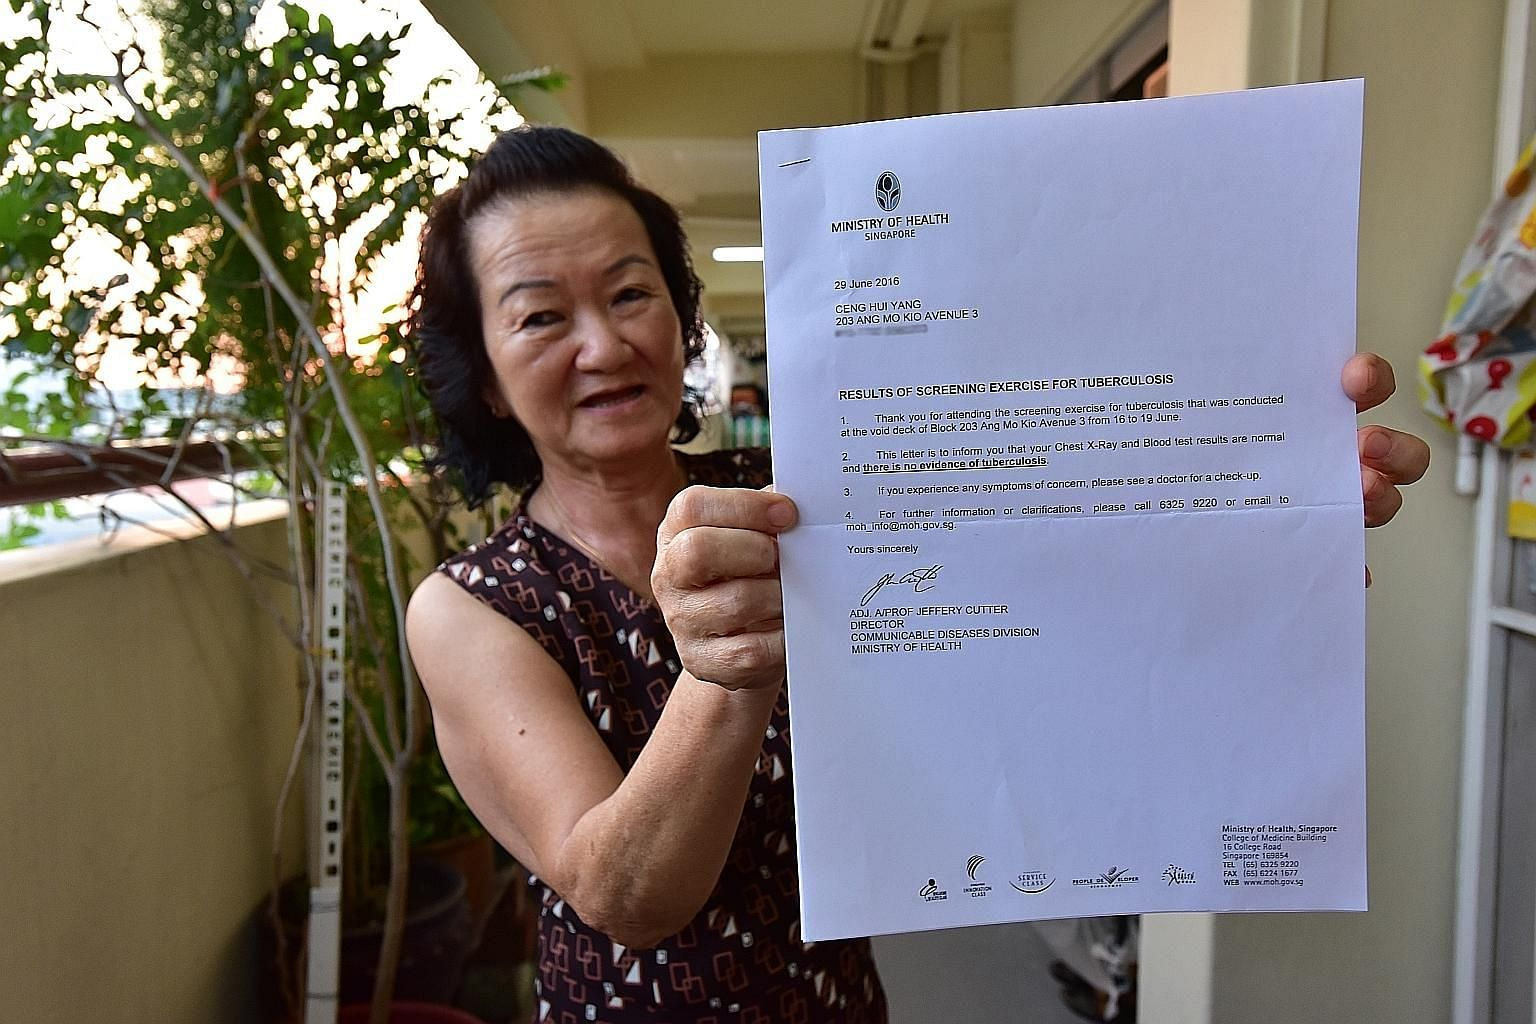 Madam Ceng, a retiree, said she has faith that the Government will contain any spread of tuberculosis. She is seen here showing her letter of clearance after she went for TB screening.